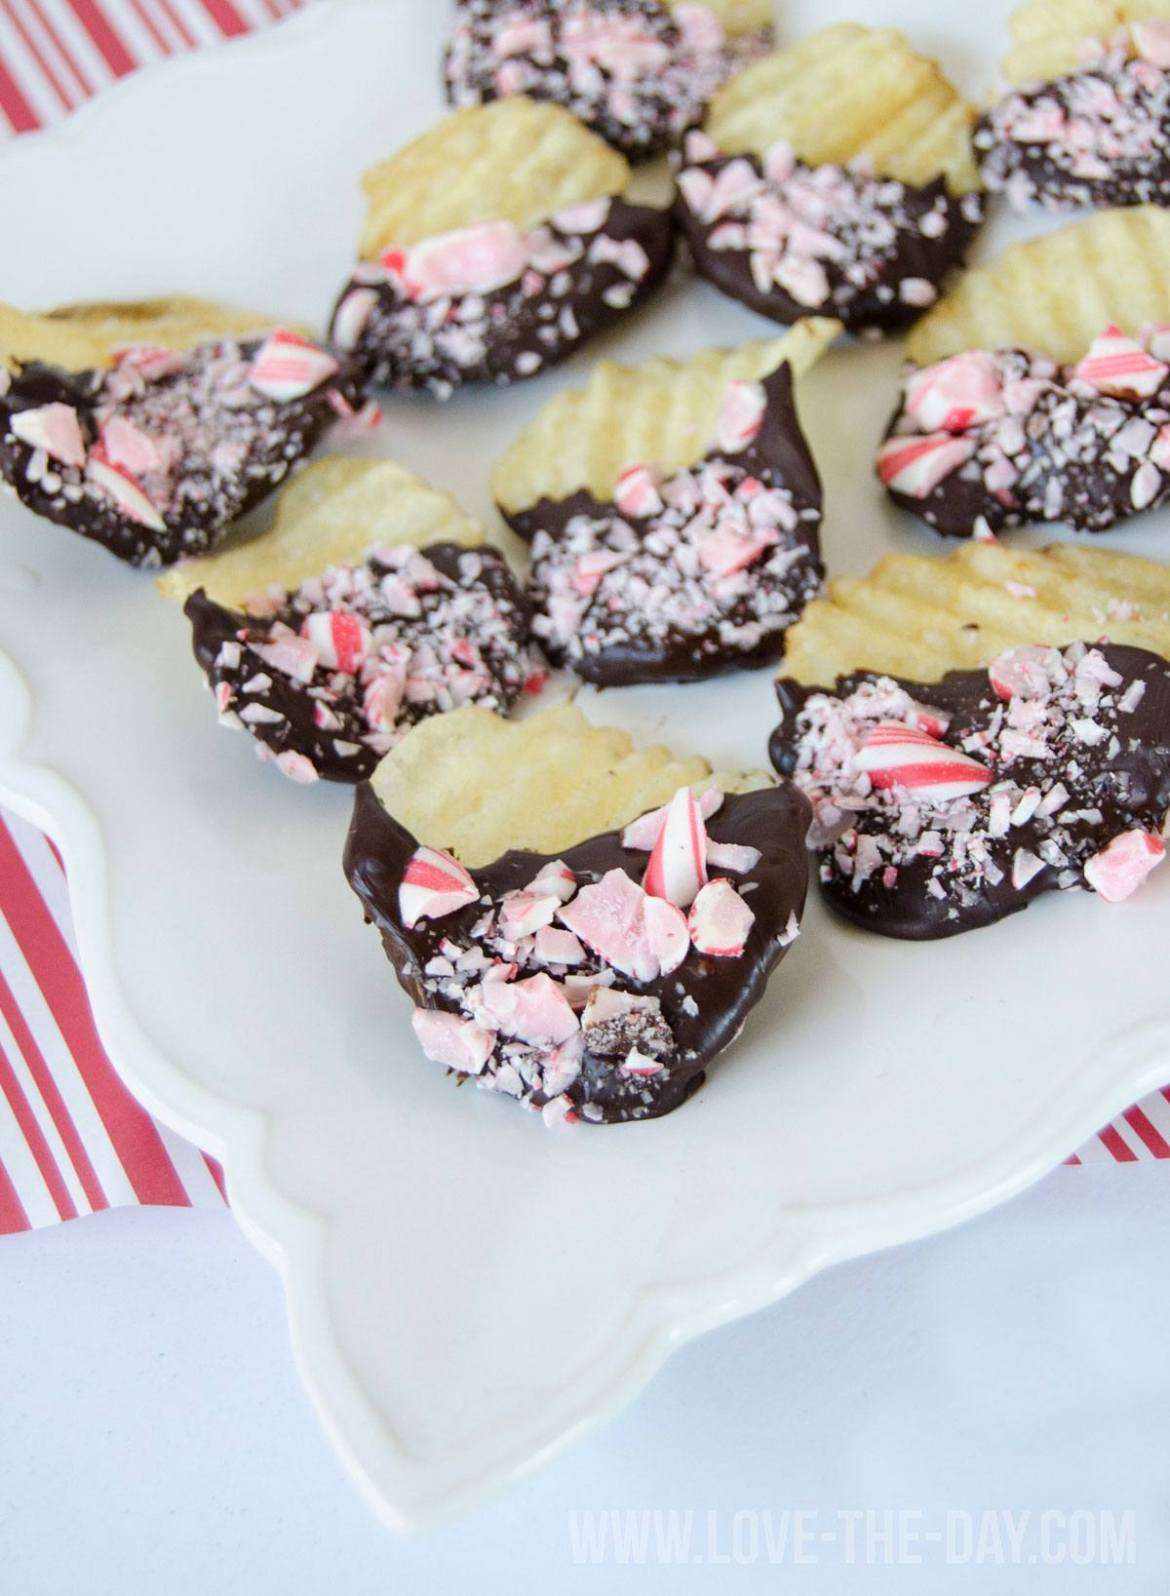 Peppermint Chocolate Covered Potato Chips